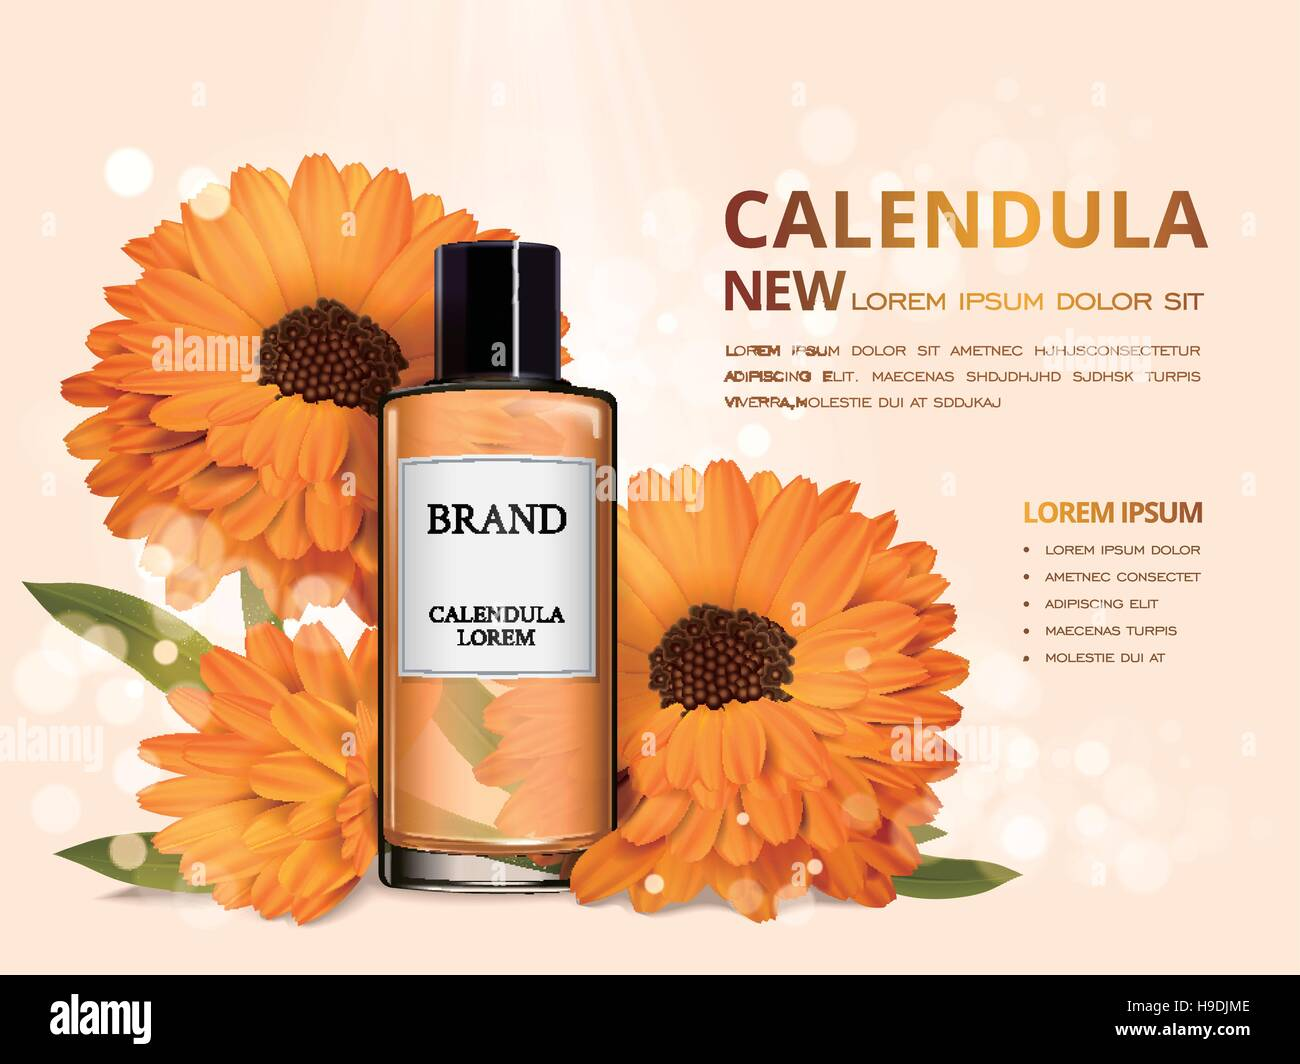 calendula skin toner ads 3d illustration cosmetic ads design with